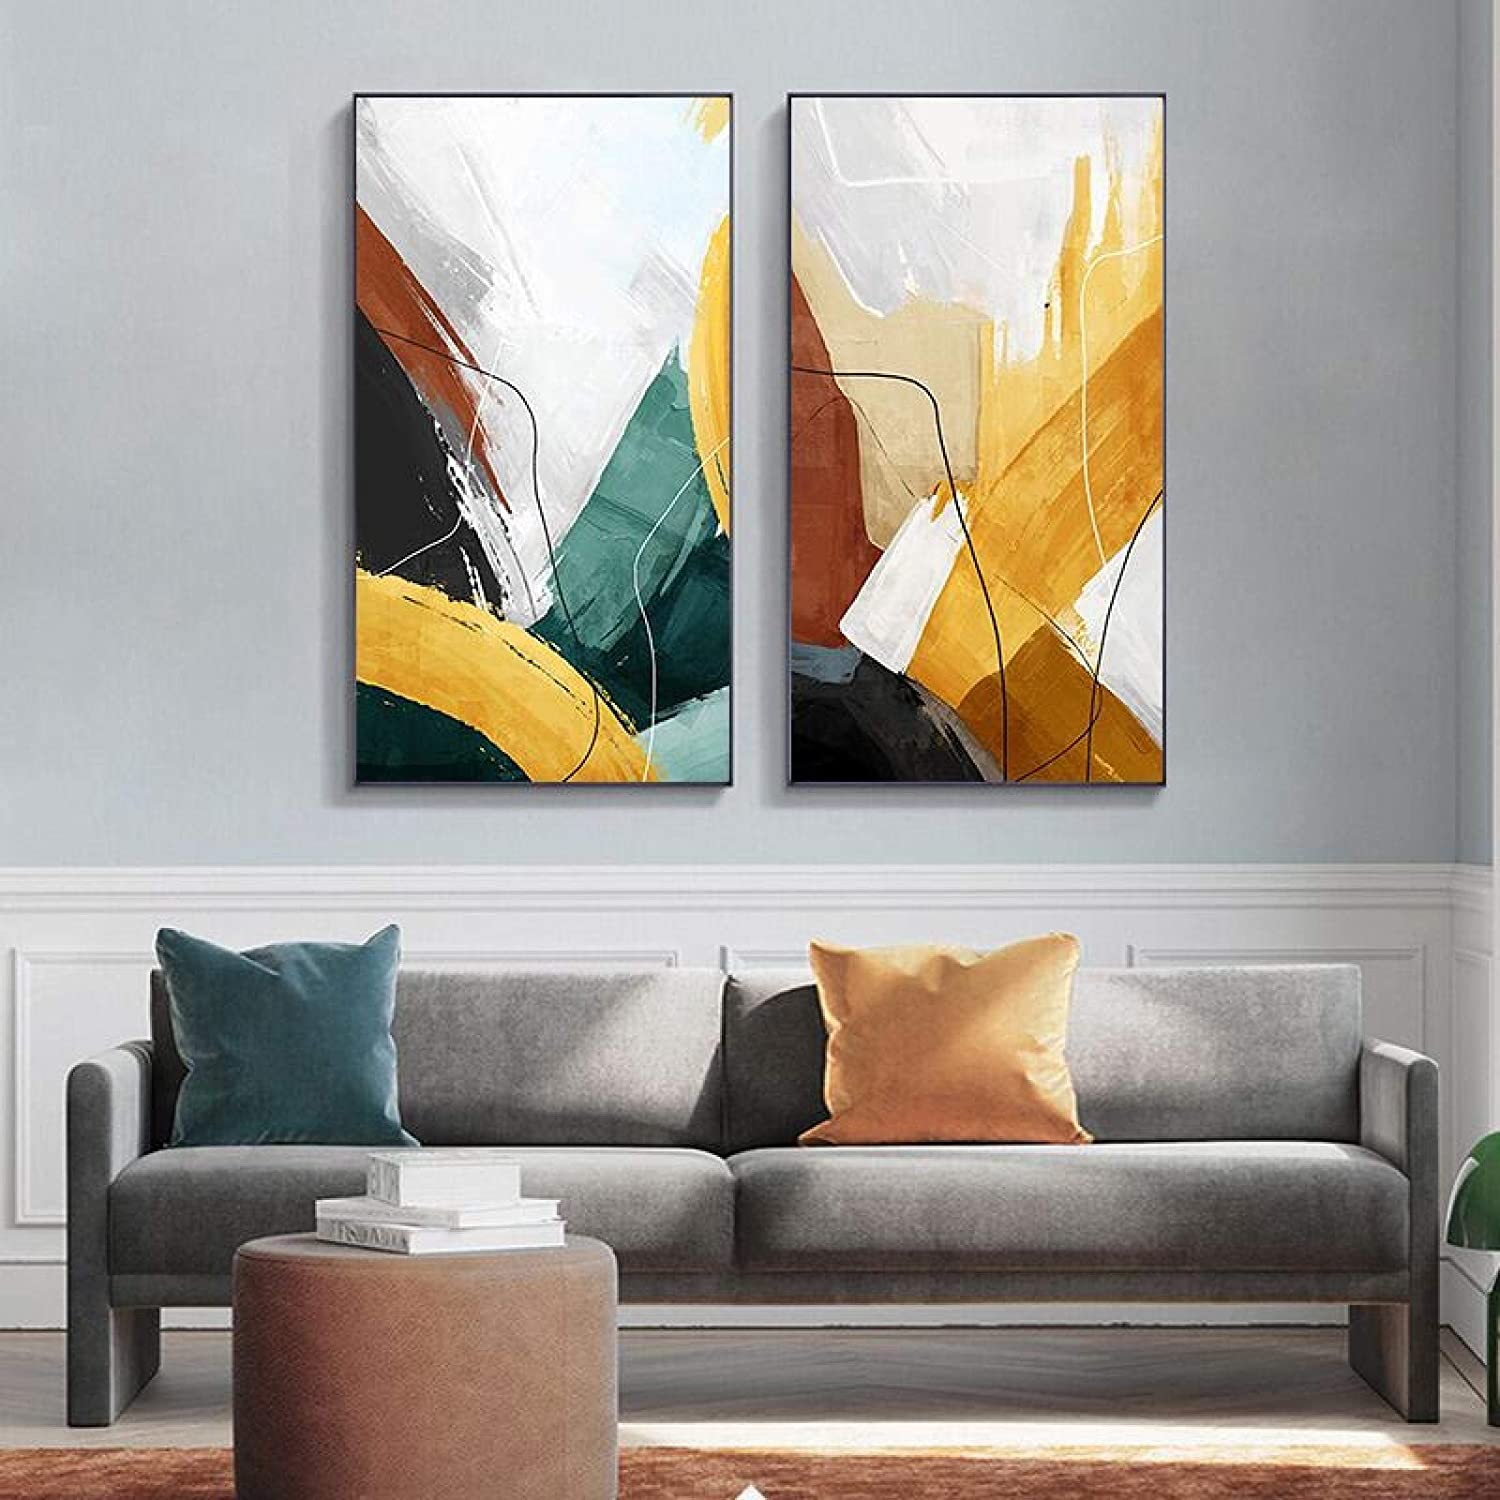 Colorful Abstract Art Wall Price reduction Painting Unique Challenge the lowest price of Japan Modern Home Decoratio